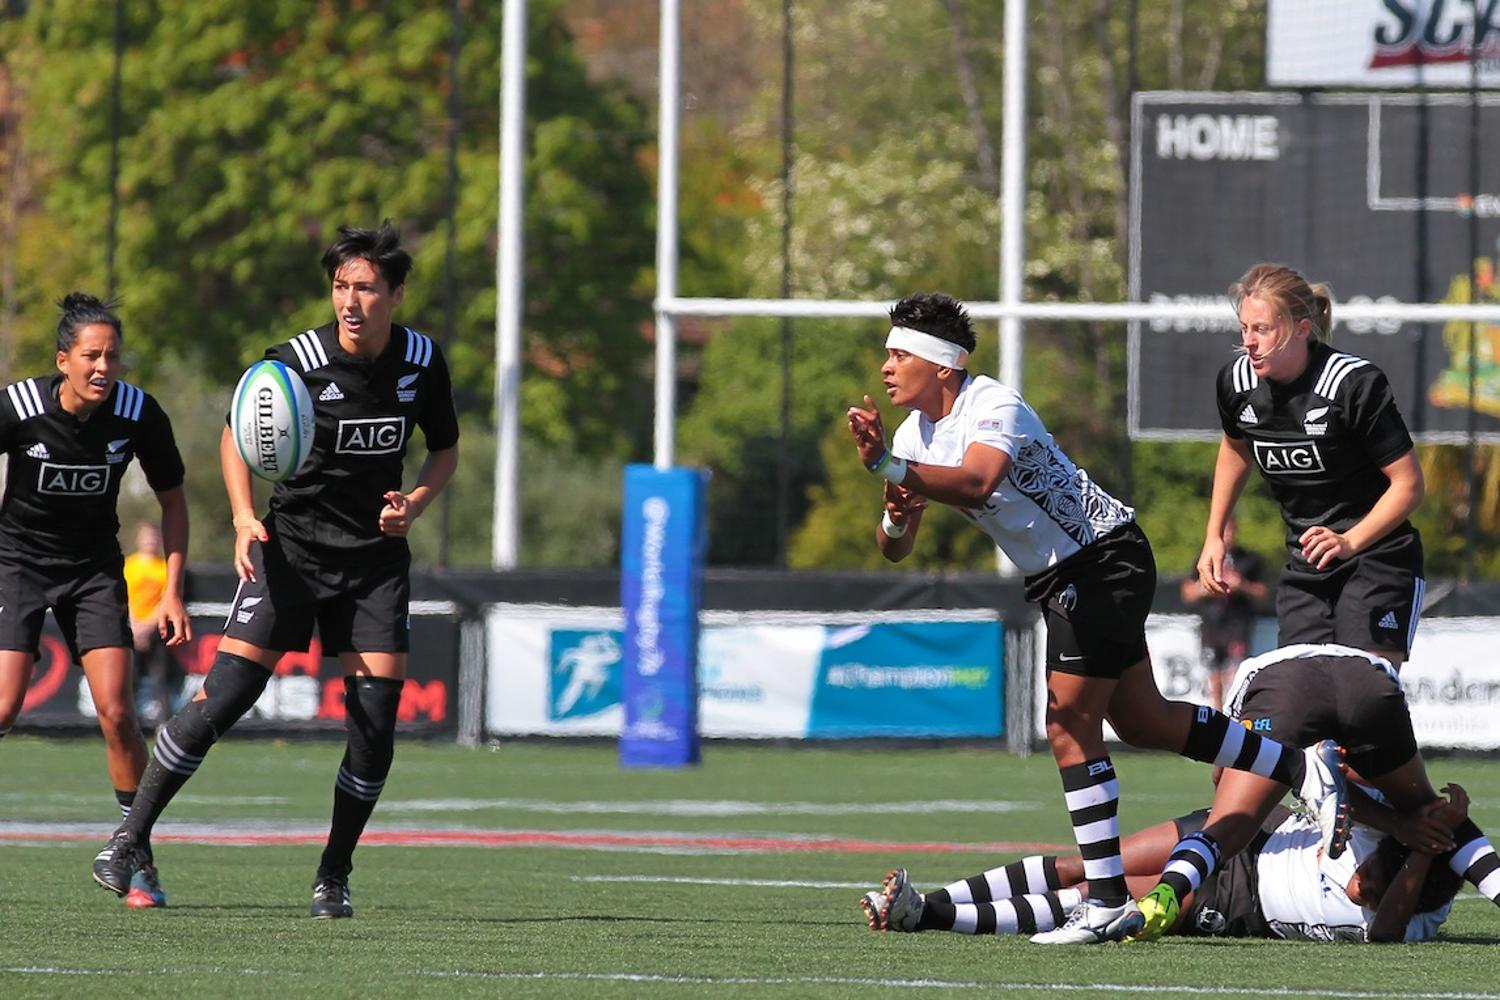 Women's Sevens Series: Fiji v New Zealand